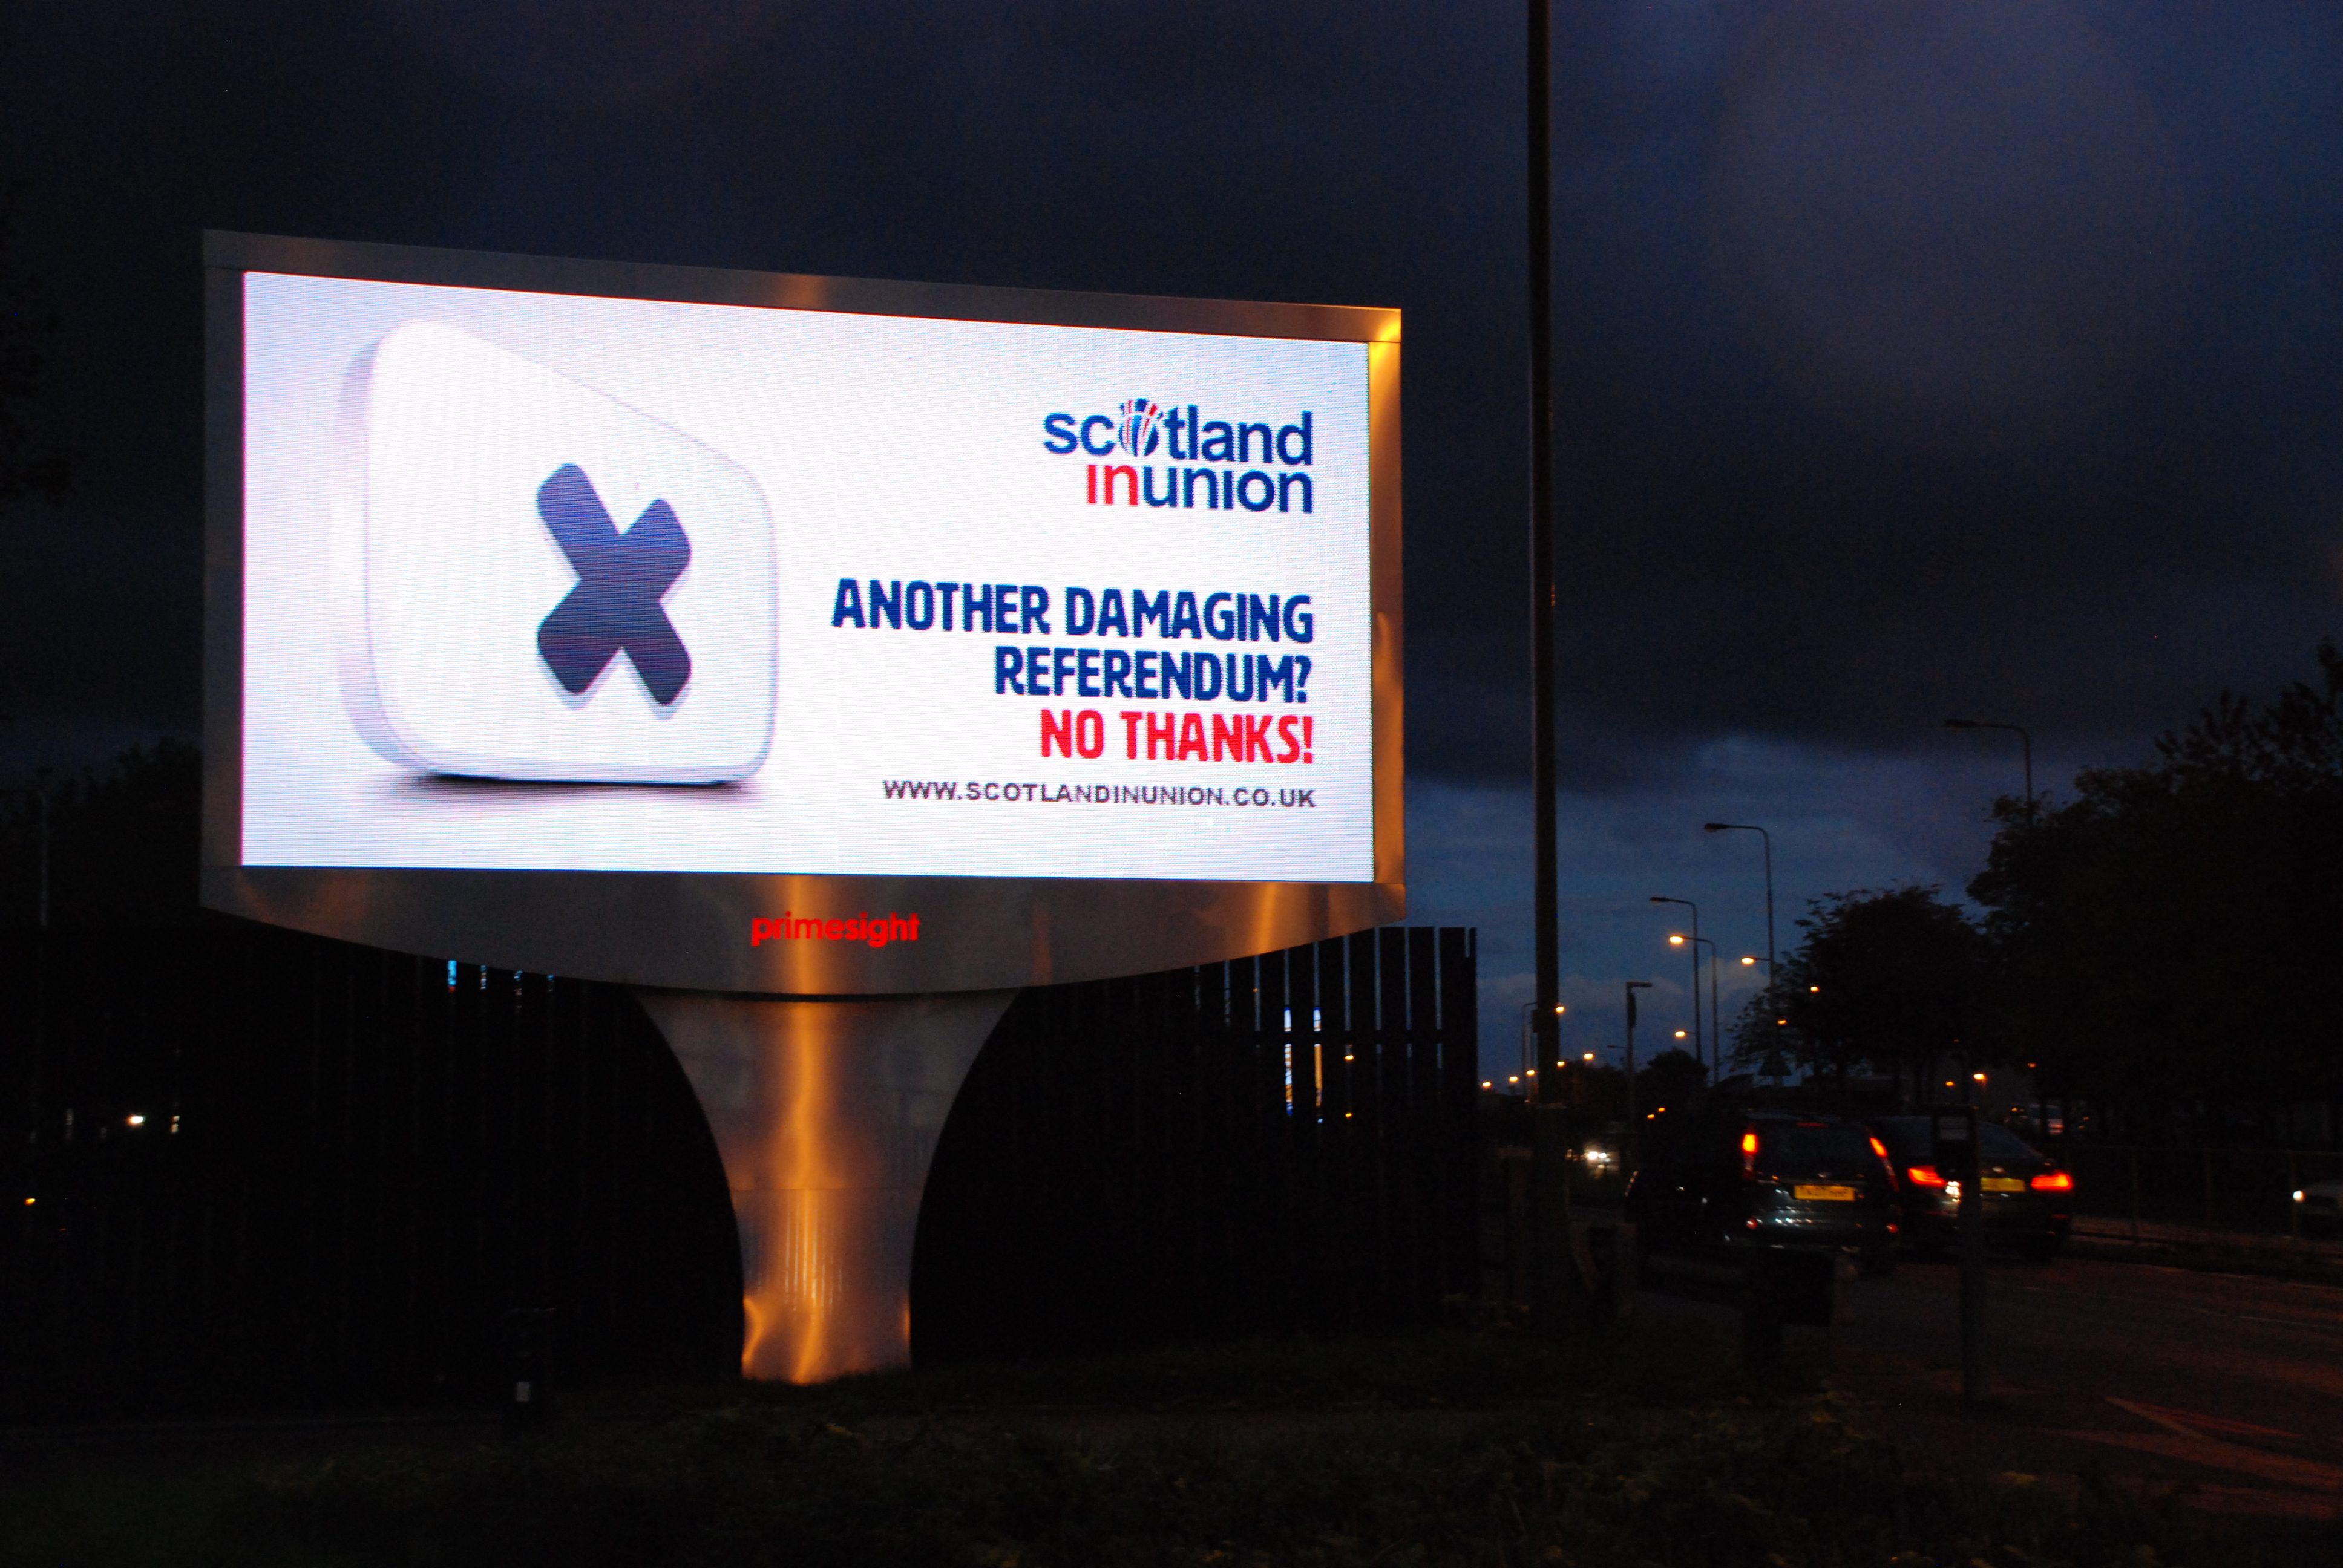 Sighthill_bilboard_on_location_1.JPG